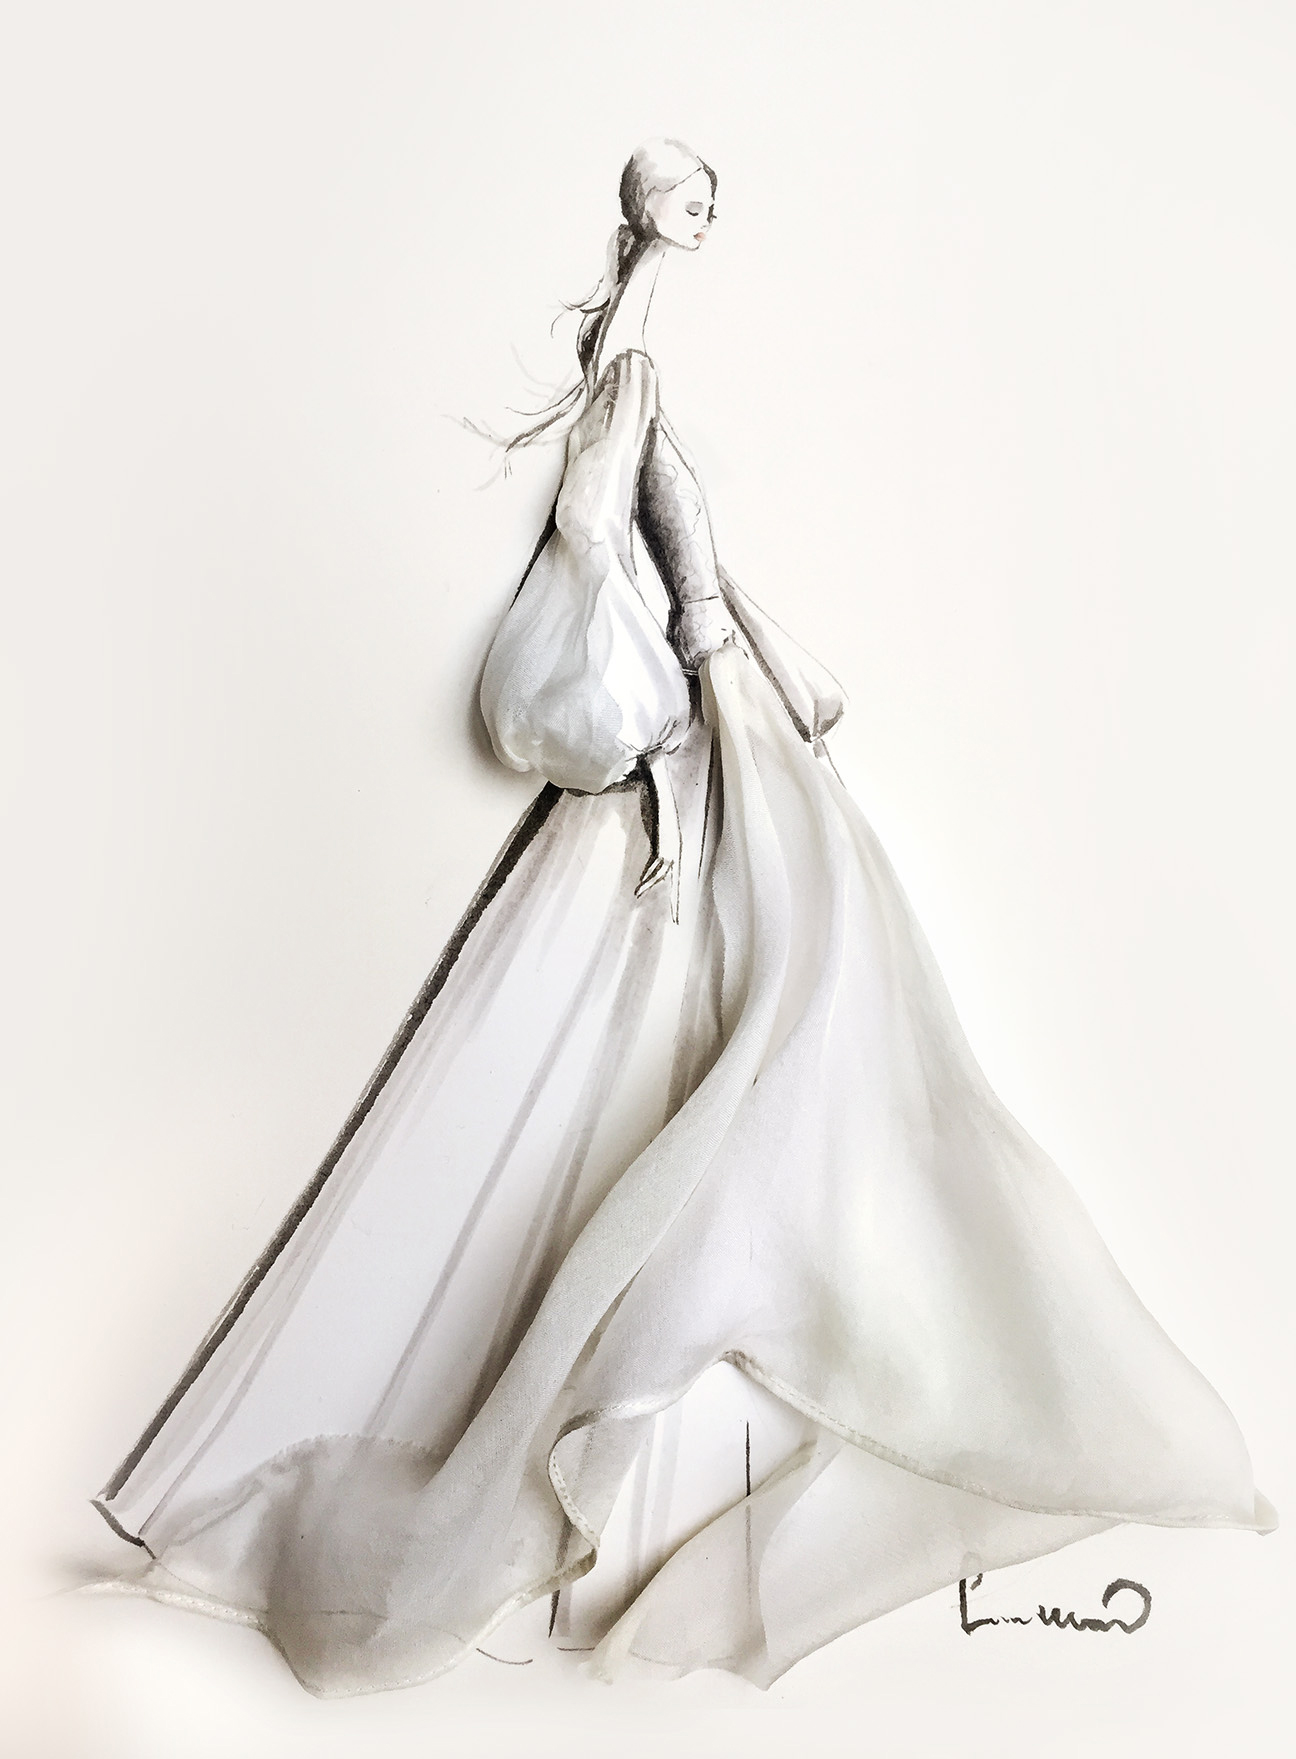 leanne marshall wedding dress sketch